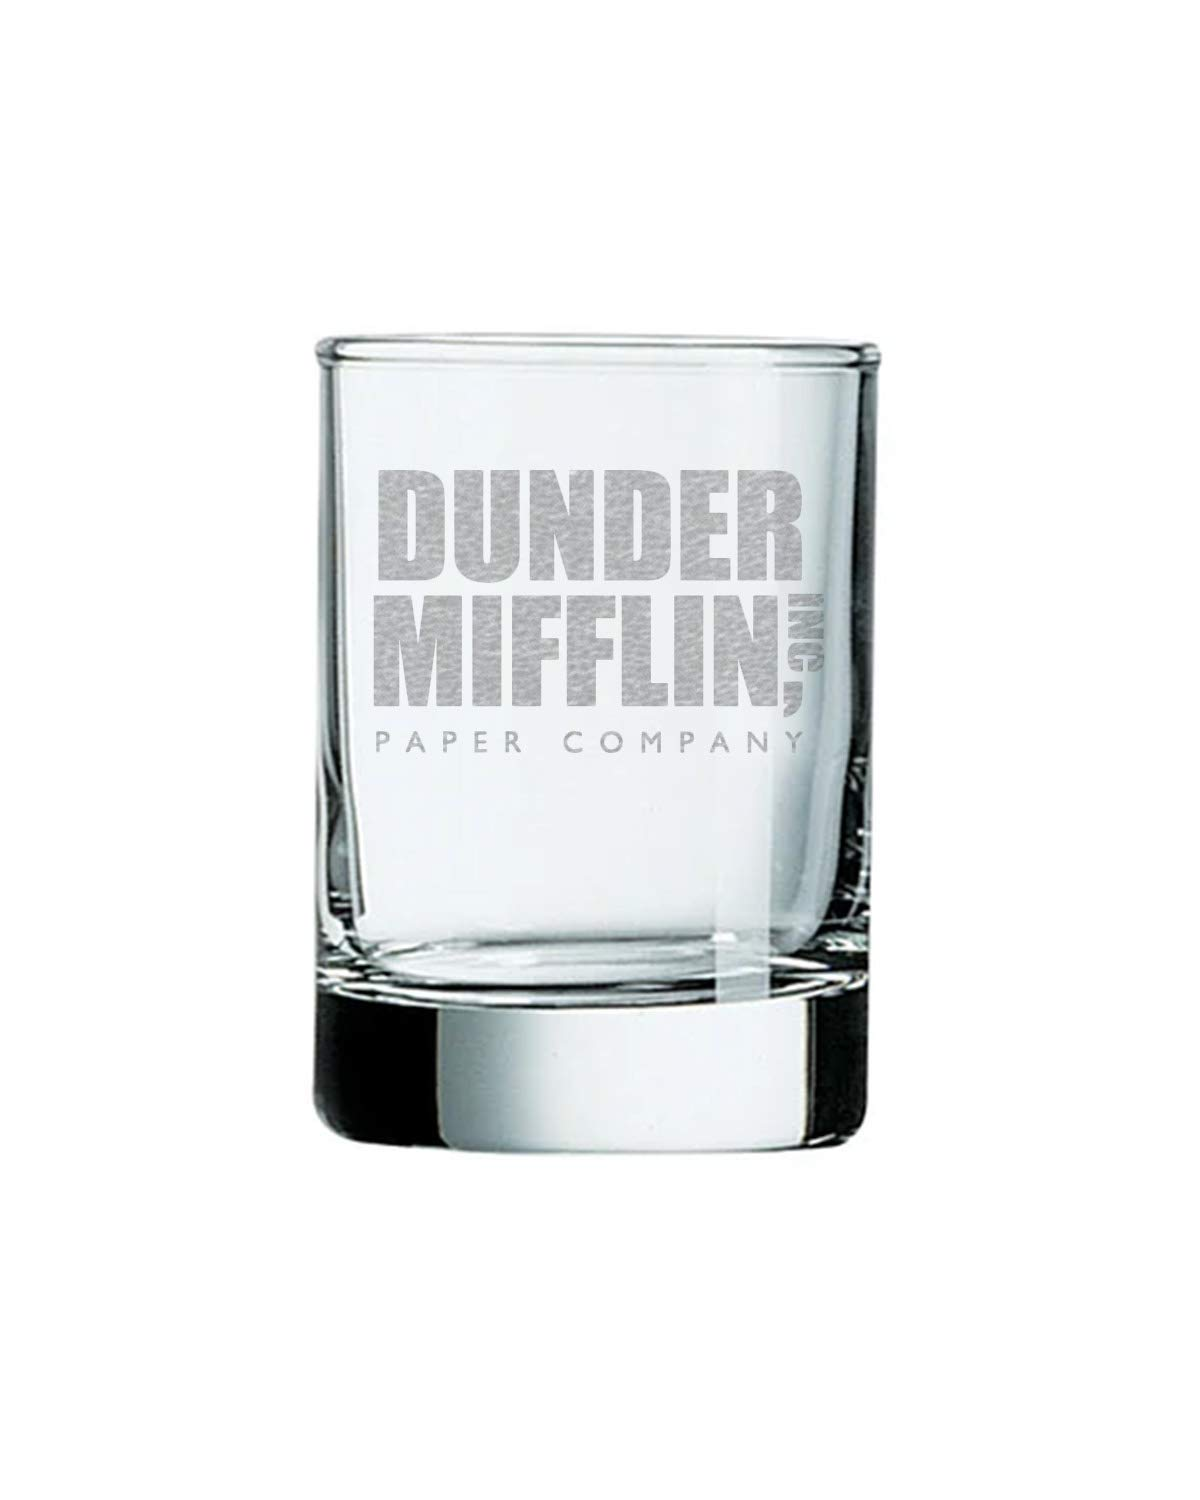 The Sale price Office Shot Glass Votive Holder Max 70% OFF Compa Paper Dunder Mifflin -